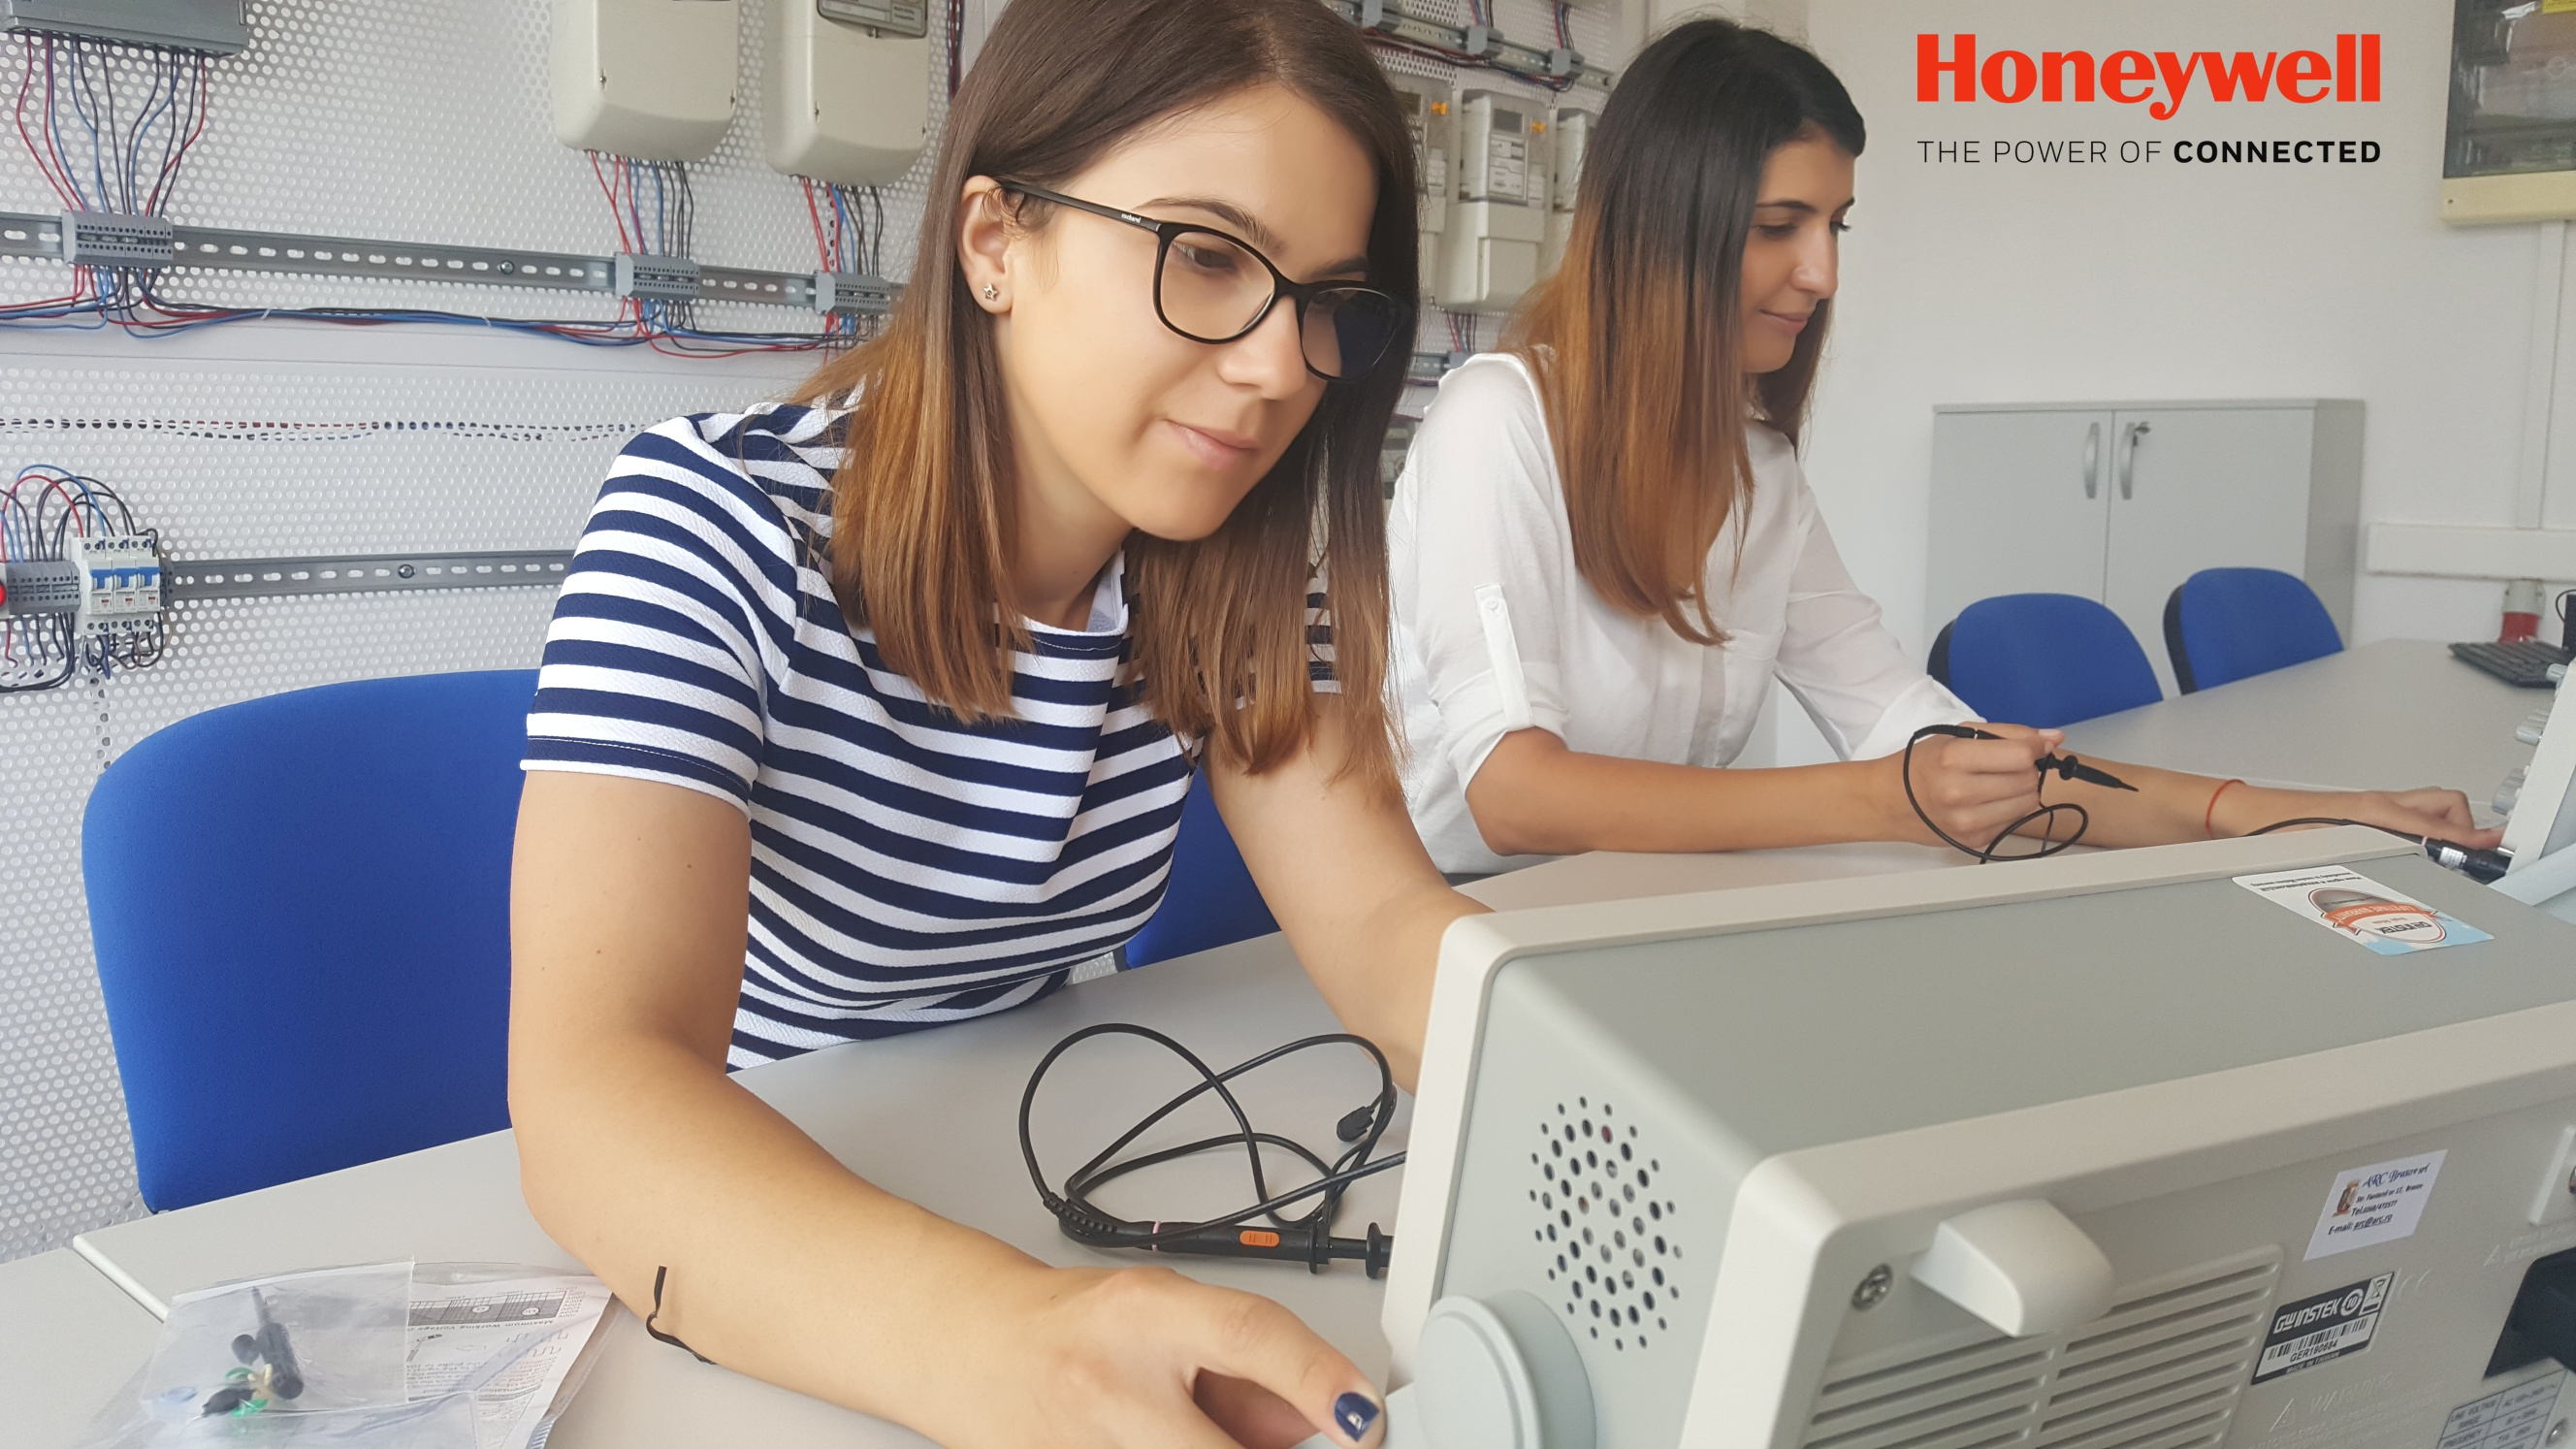 Laborator Honeywell la Universitatea Politehnică Timișoara